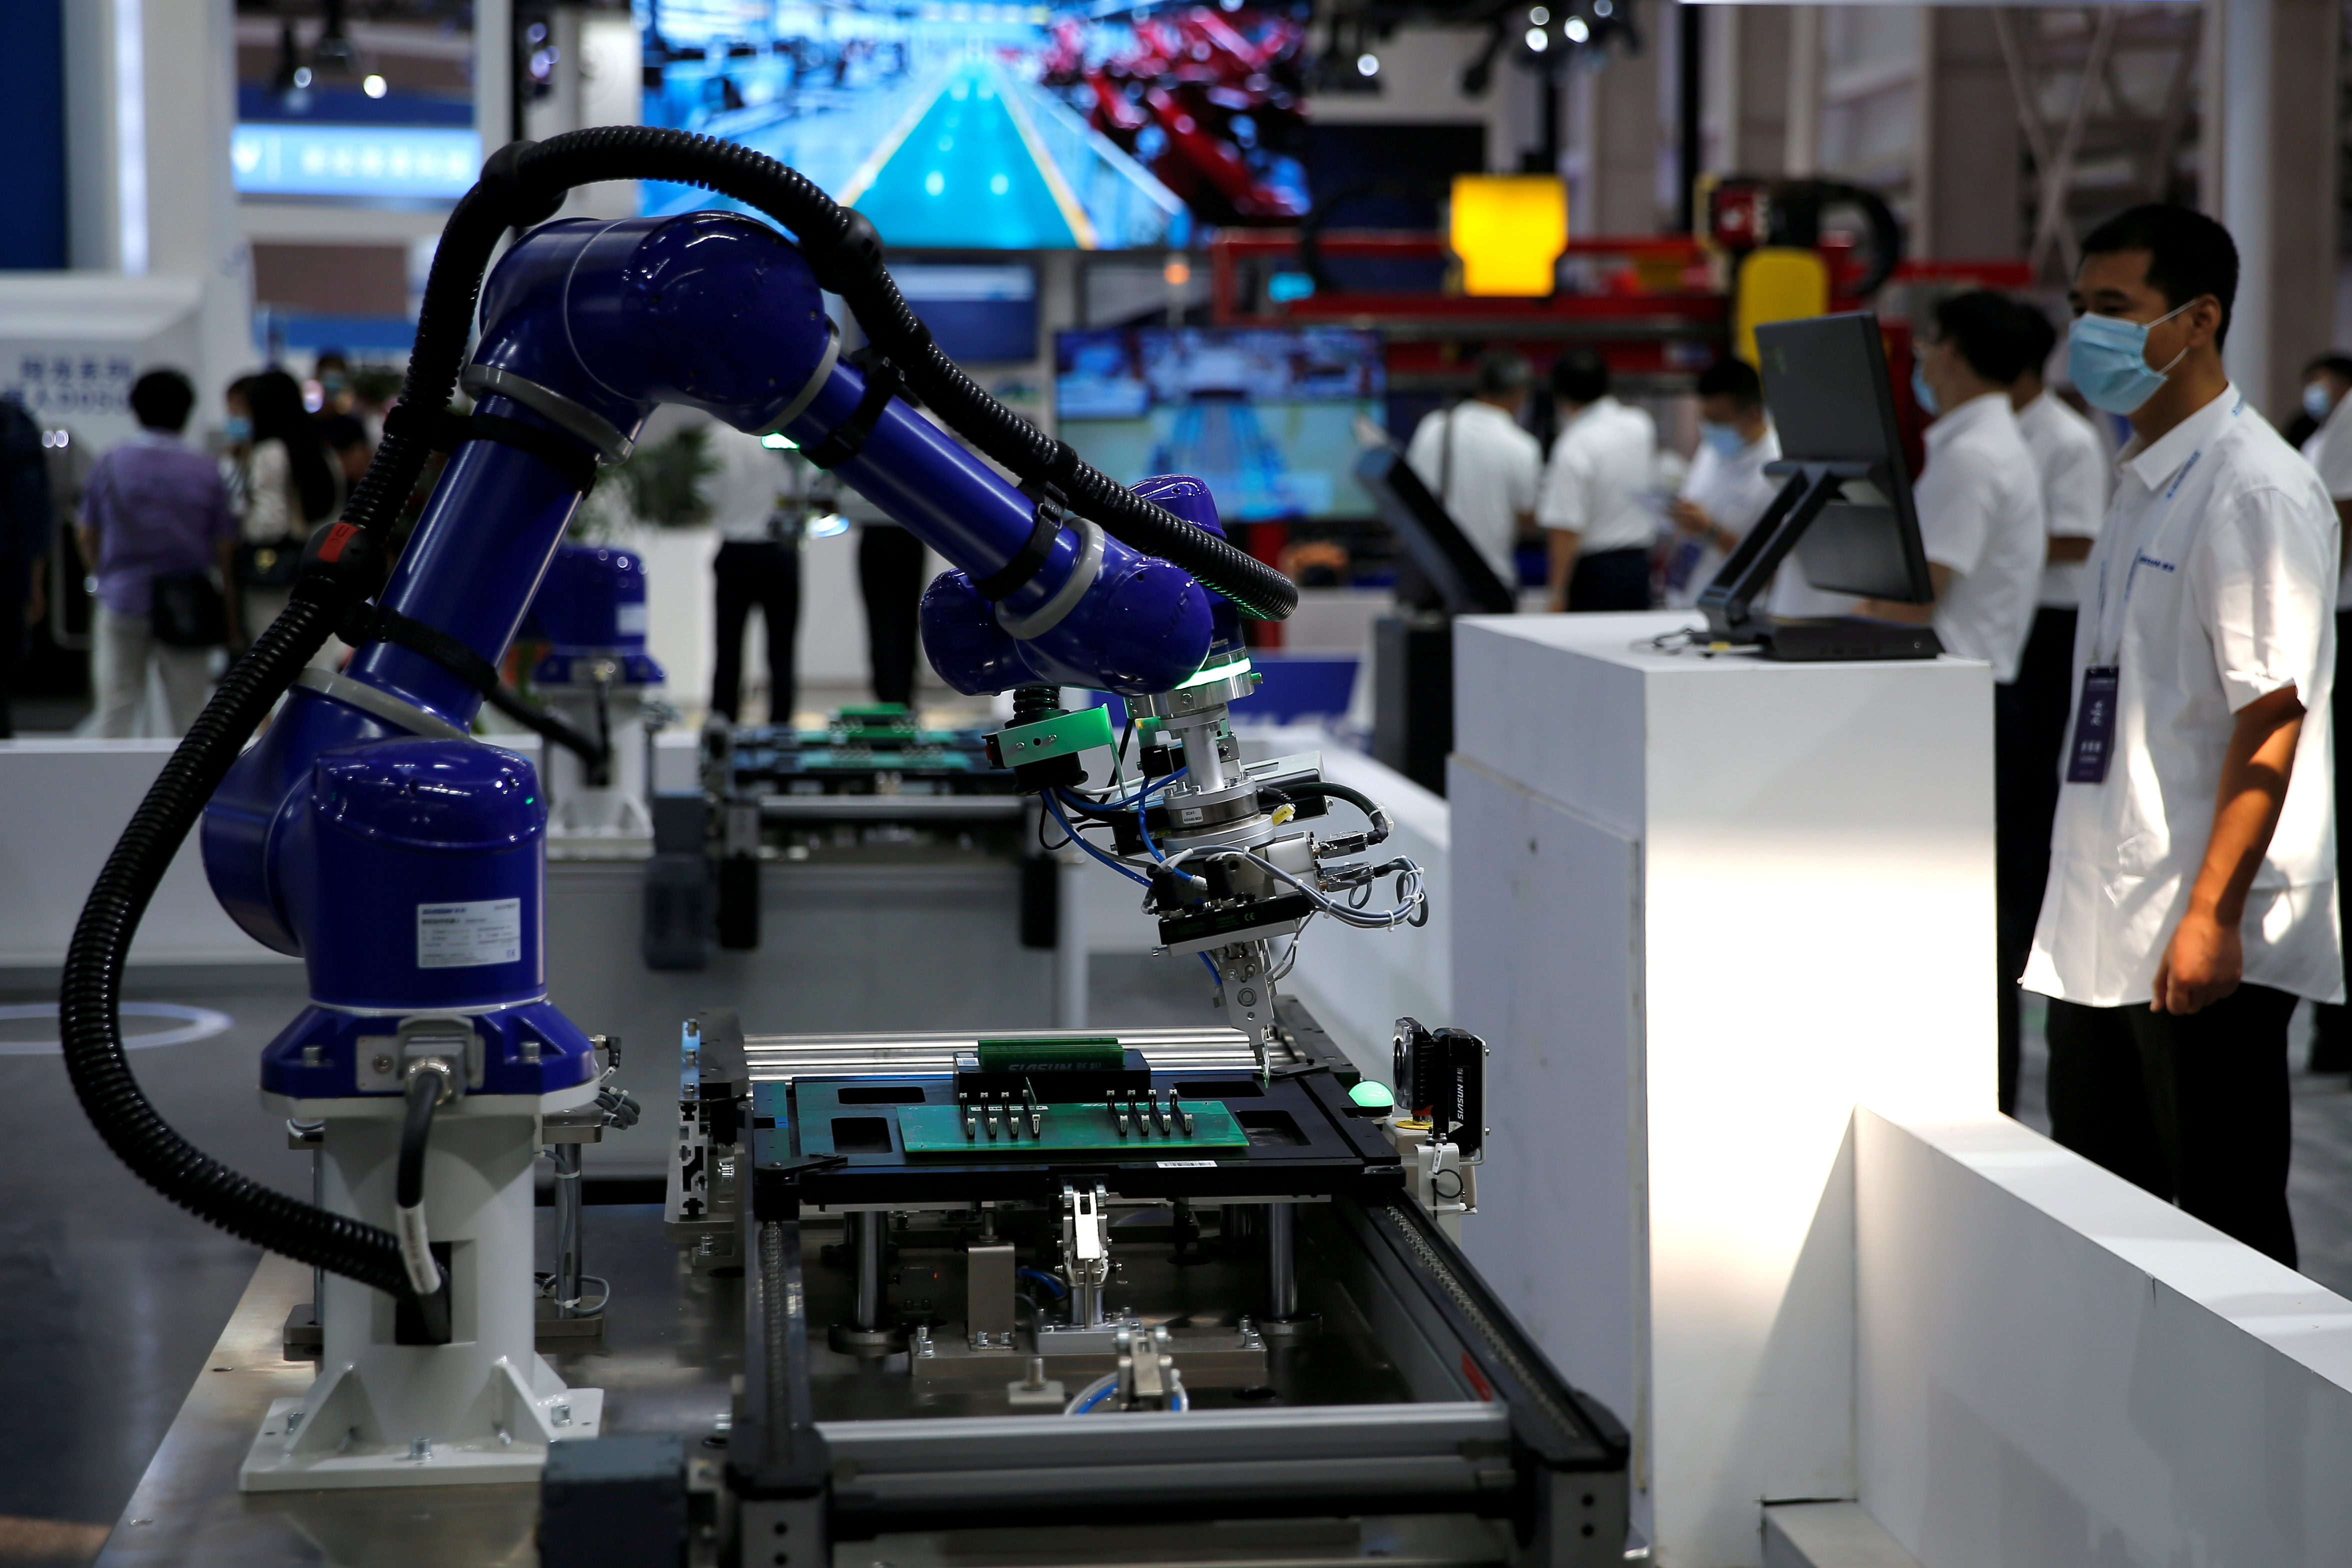 A robotic arm by Siasun operates for display at the Beijing World Robot Conference 2021 in Beijing, China September 10, 2021. REUTERS/Tingshu Wang/File Photo